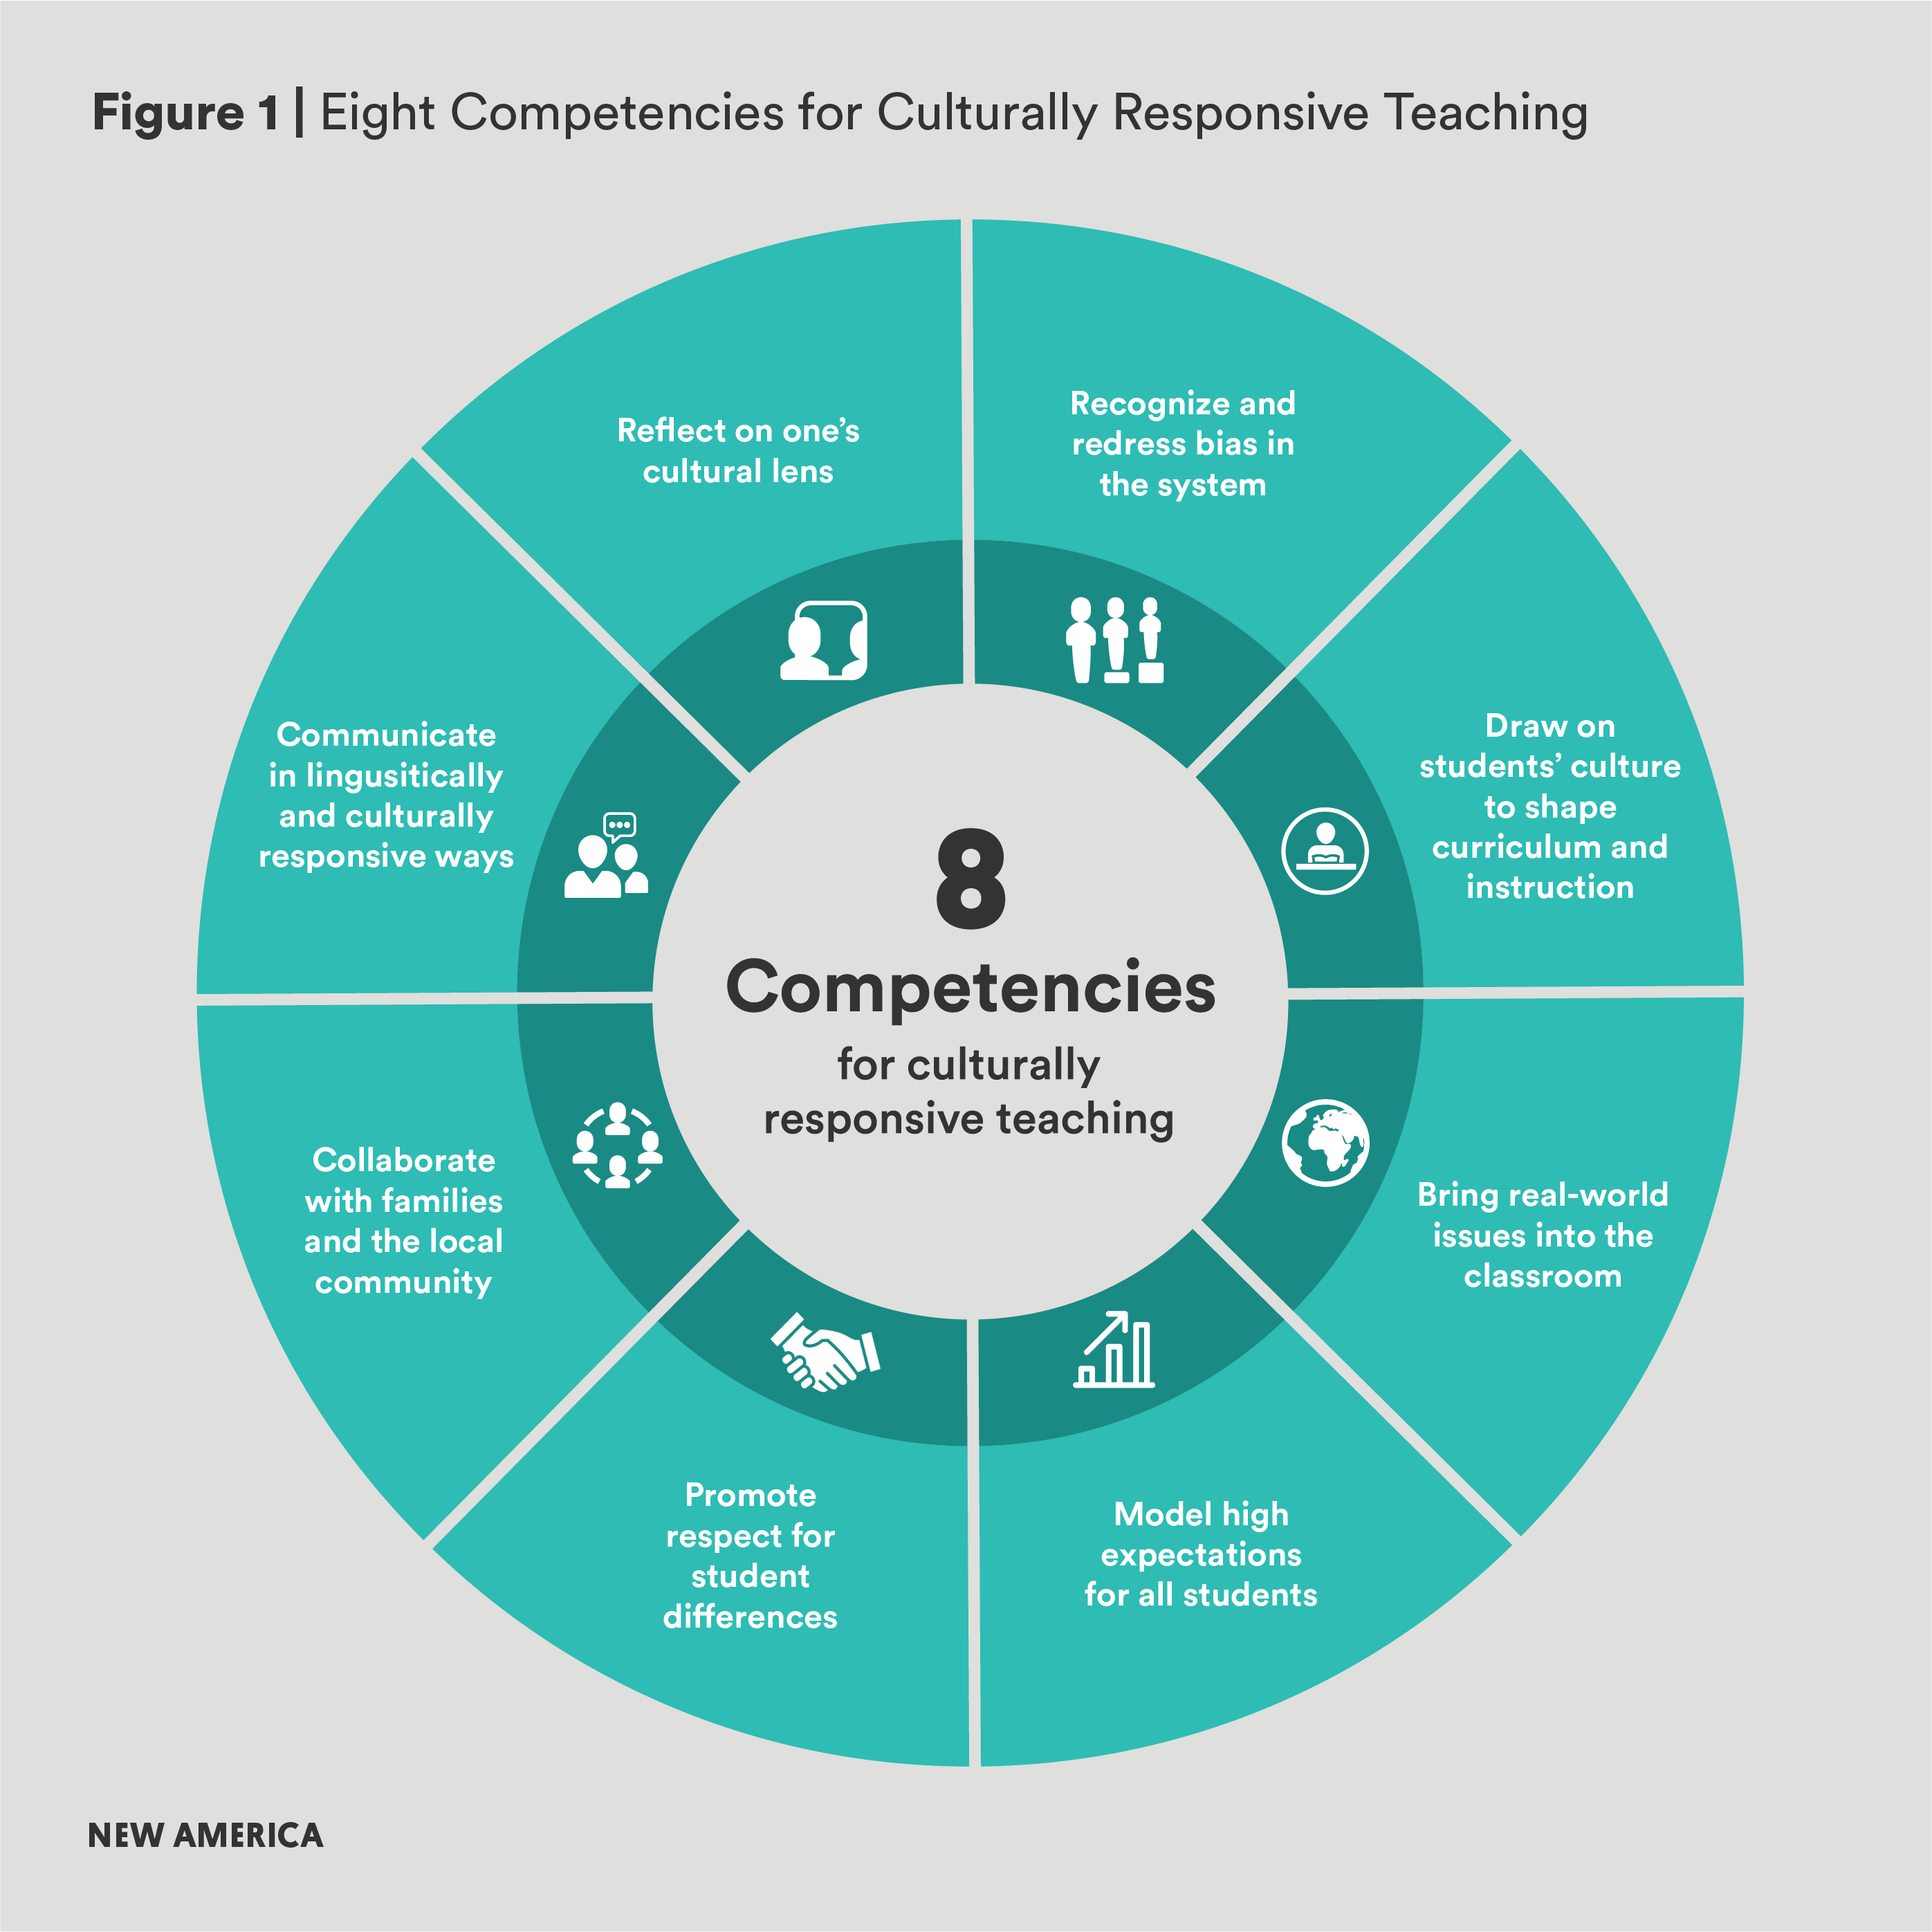 The 8 competencies for culturally responsive teaching: 1. Reflect on One's Cultural Lens; 2. Recognize and Redress Bias in the System; 3.  Draw on students' culture to share curriculum and instruction; 4. Bring Real-world Issues into the Classroom; 5. Model High Expectations for All Students; 6. Promote Respect for Students Differences; 7. Collaborate with Families and the Local Community; 8. Communicate in Linguistically and Culturally Responsive Ways.